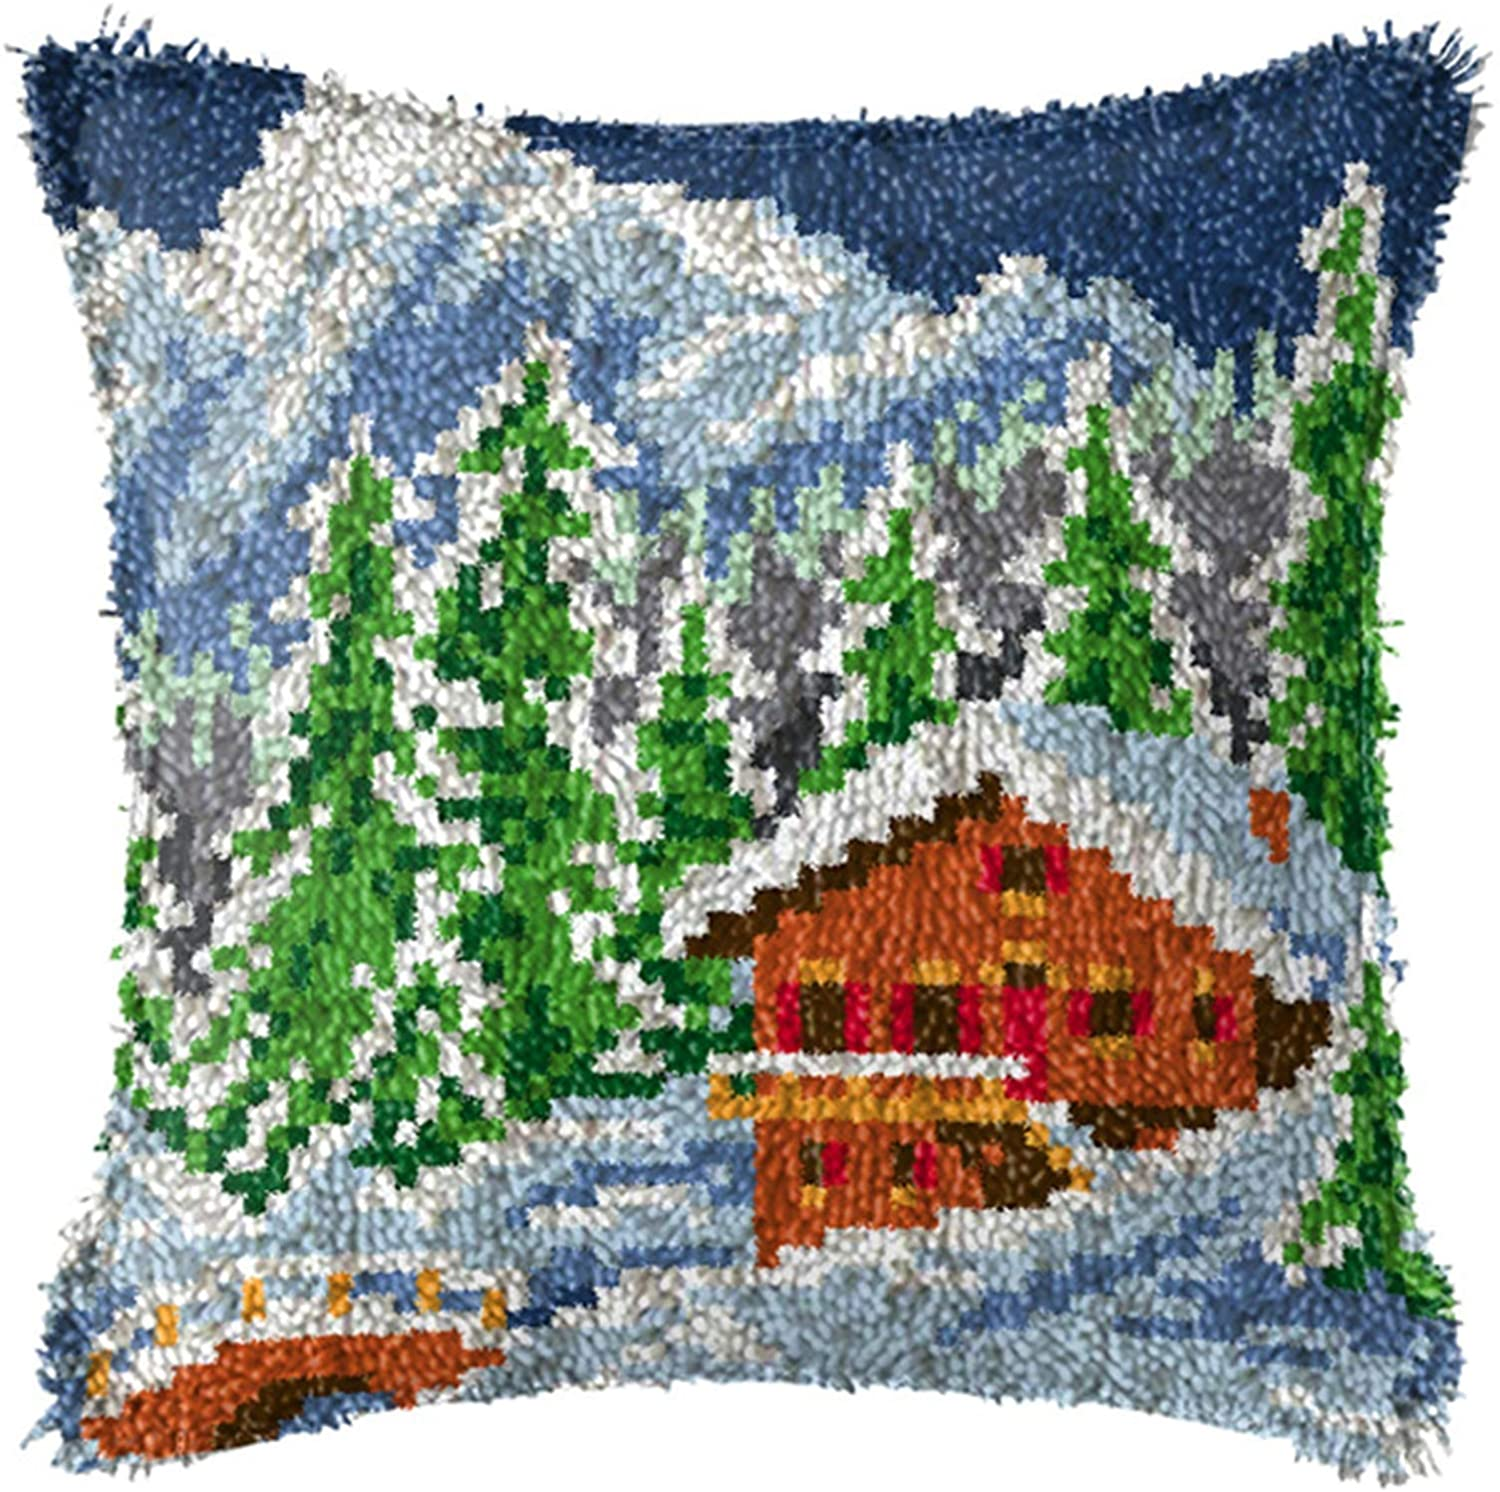 QJBMEI Latch Hook Kits, Landscape Printed DIY Pillow Cover Making Crafts Kit with Canvas for Kids/Adults and Beginner, 16.9X16.9 Inch,C,4343CM